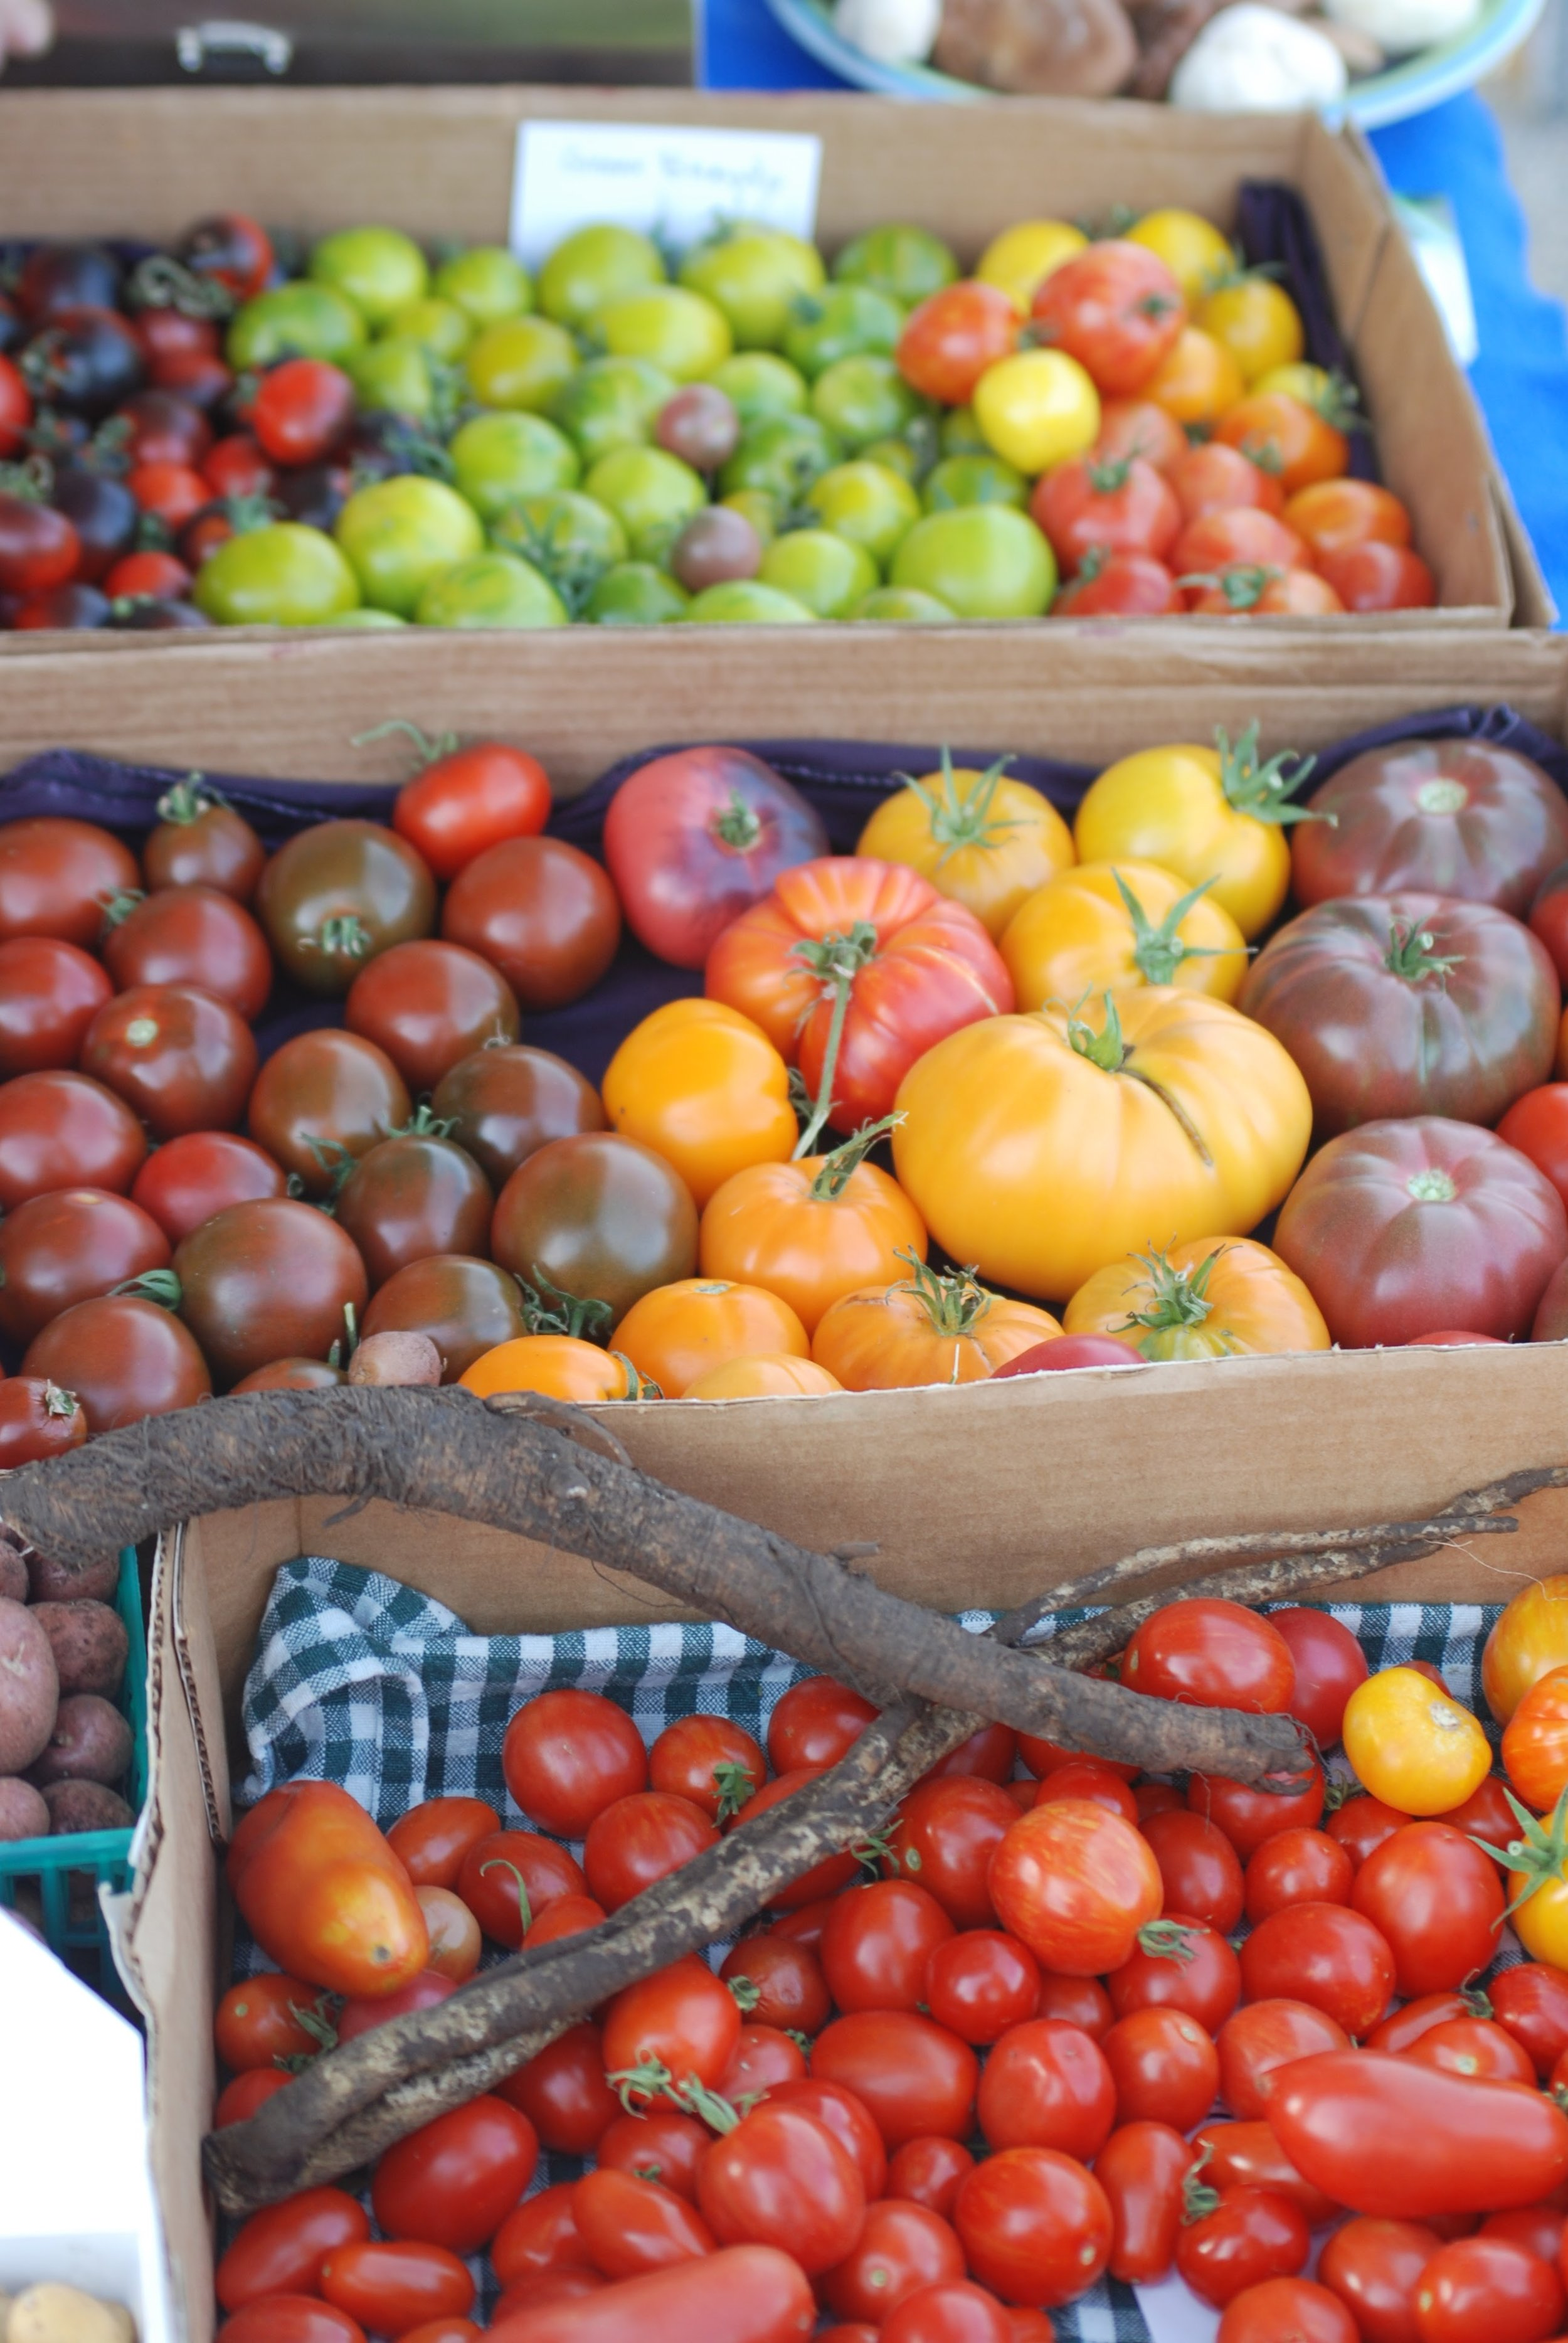 produce tomatoes sorted in boxes 2.JPG